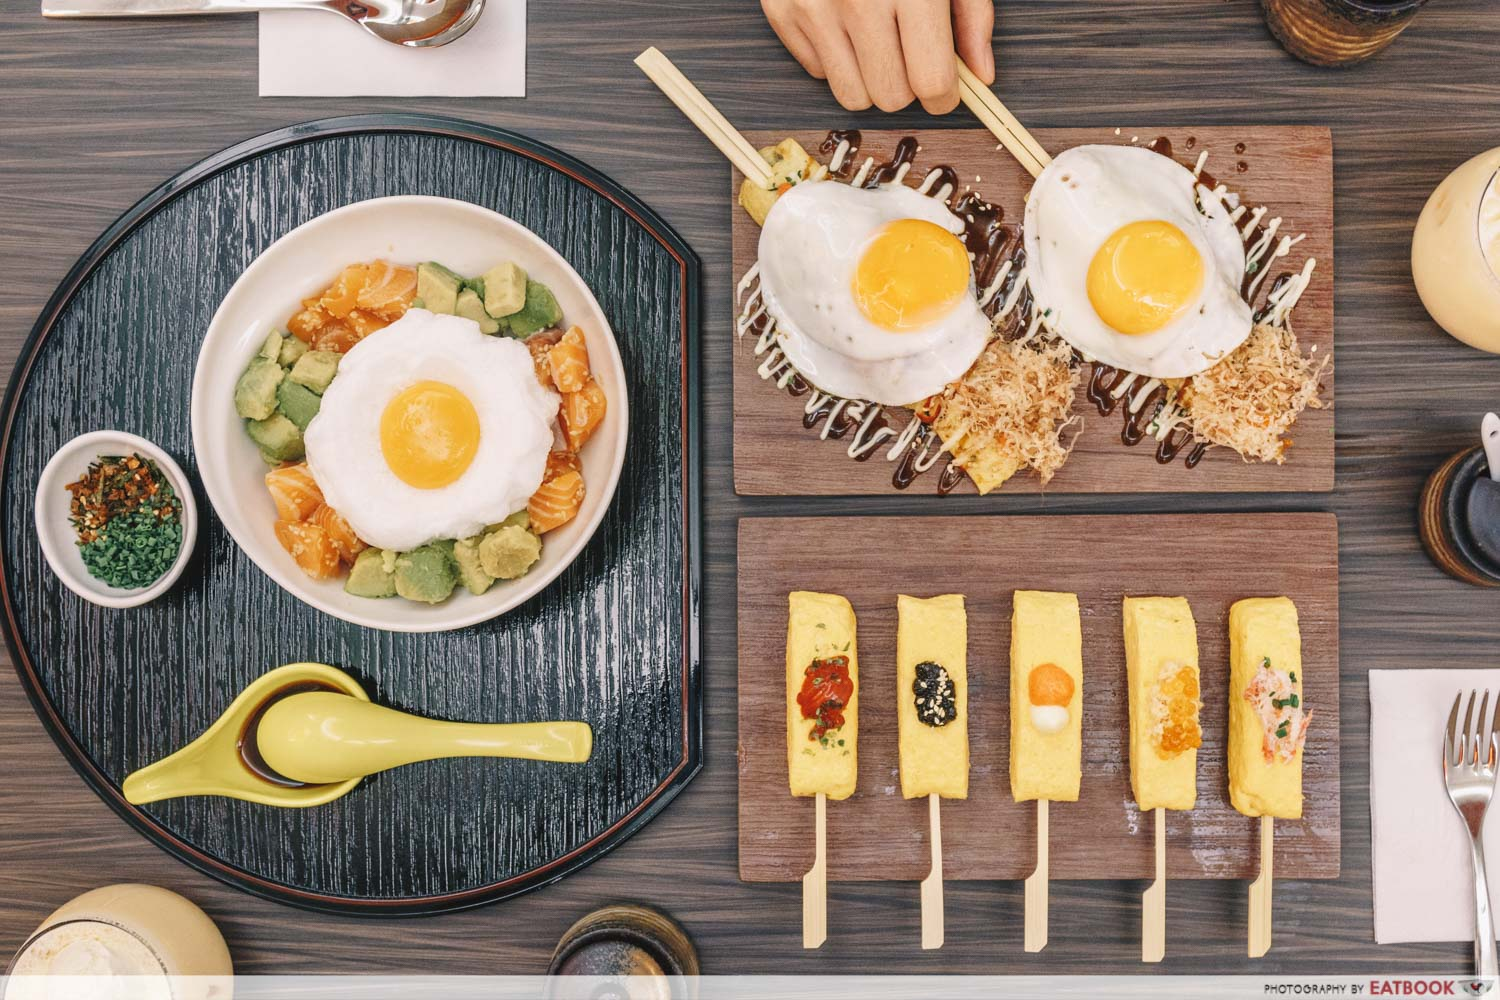 313 somerset food tamago en